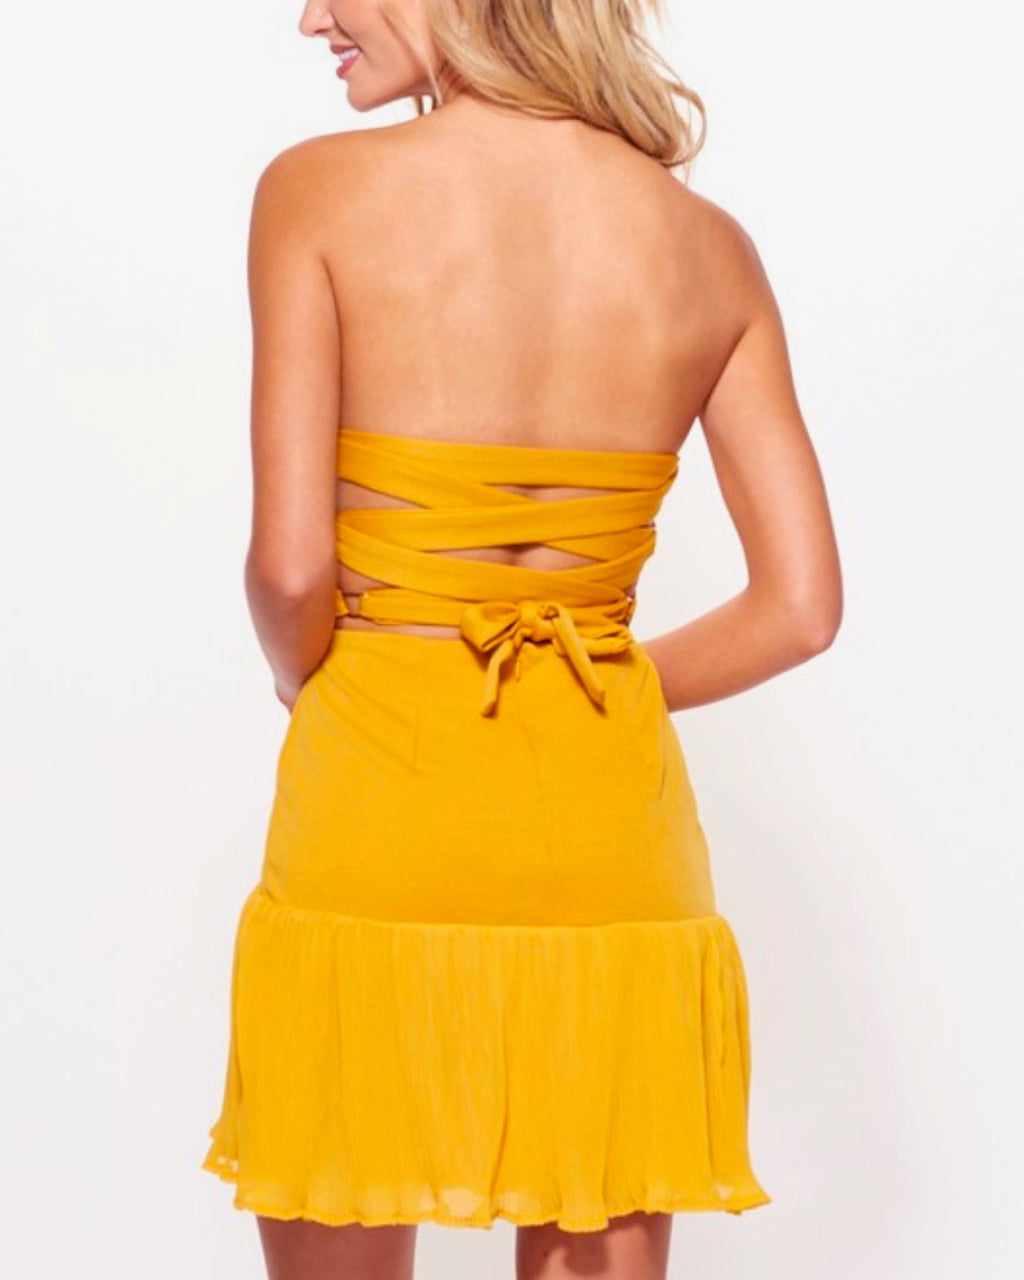 strapless bodycon mini dress with pleated chiffon trim and criss cross open back in mustard